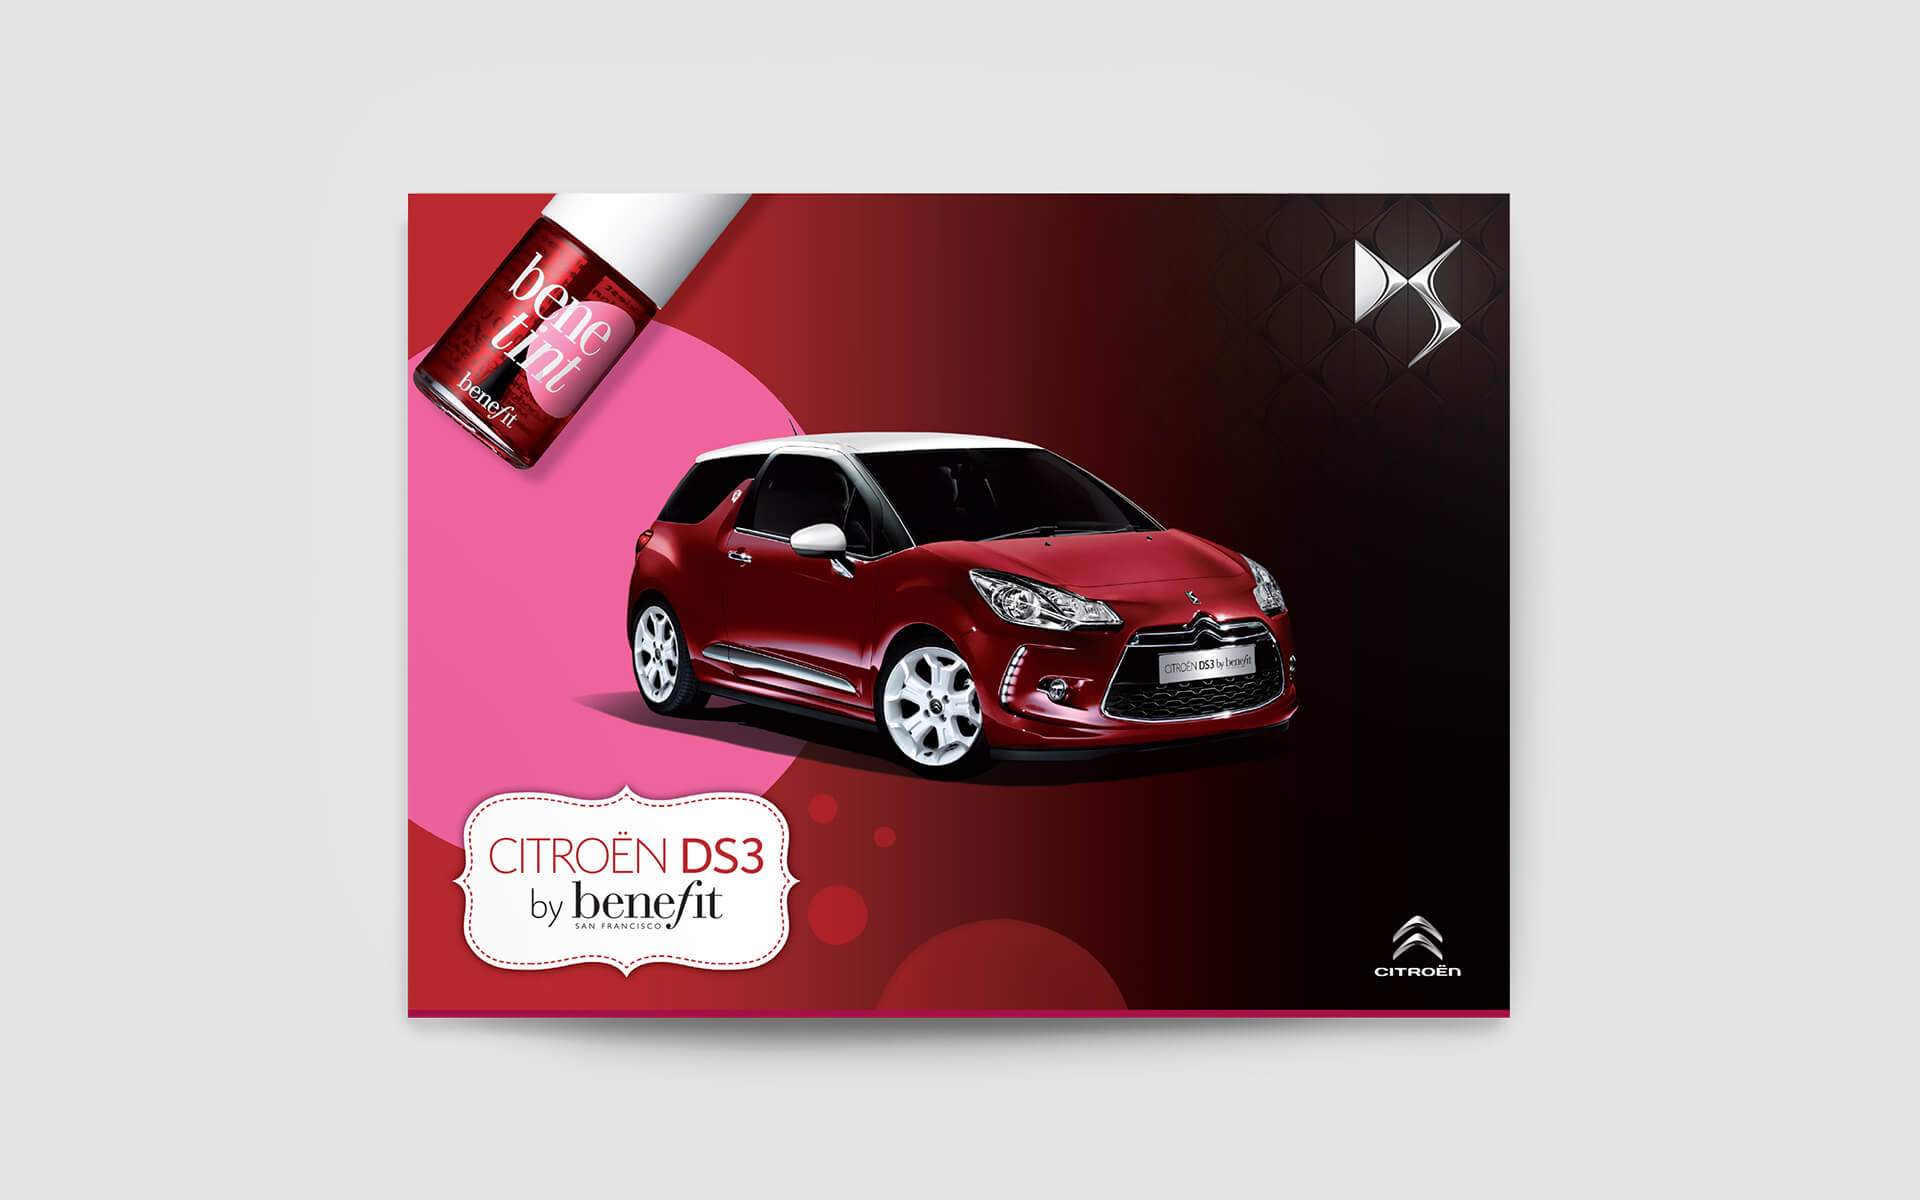 ds3 by benefit brochure cover